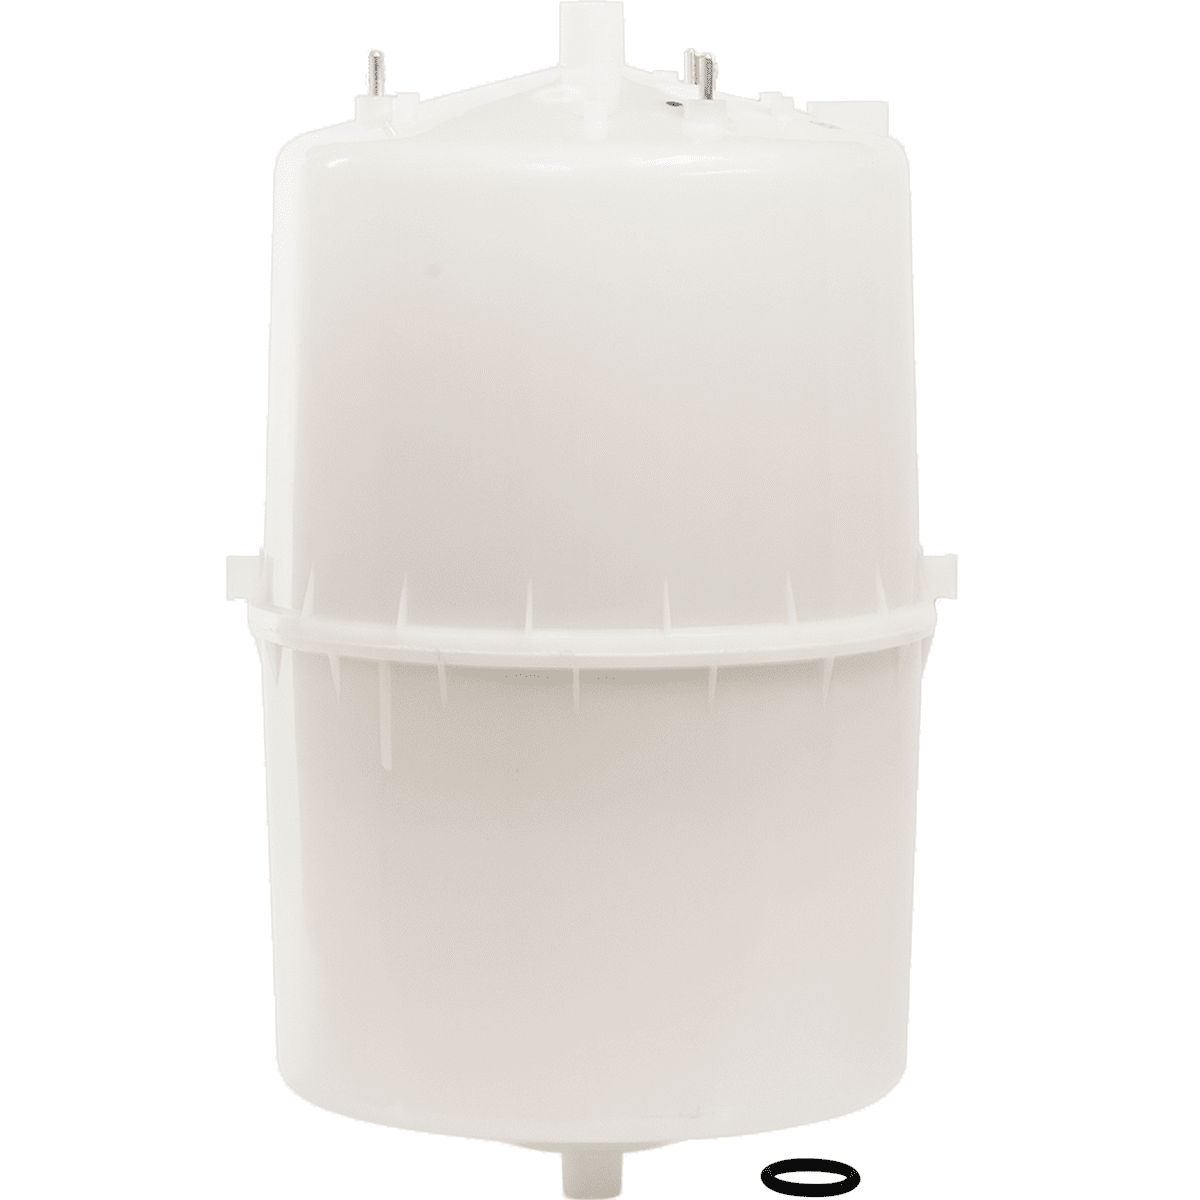 Aprilaire 421a Steam Humidifier Cylinder (fits Nortec® 421)